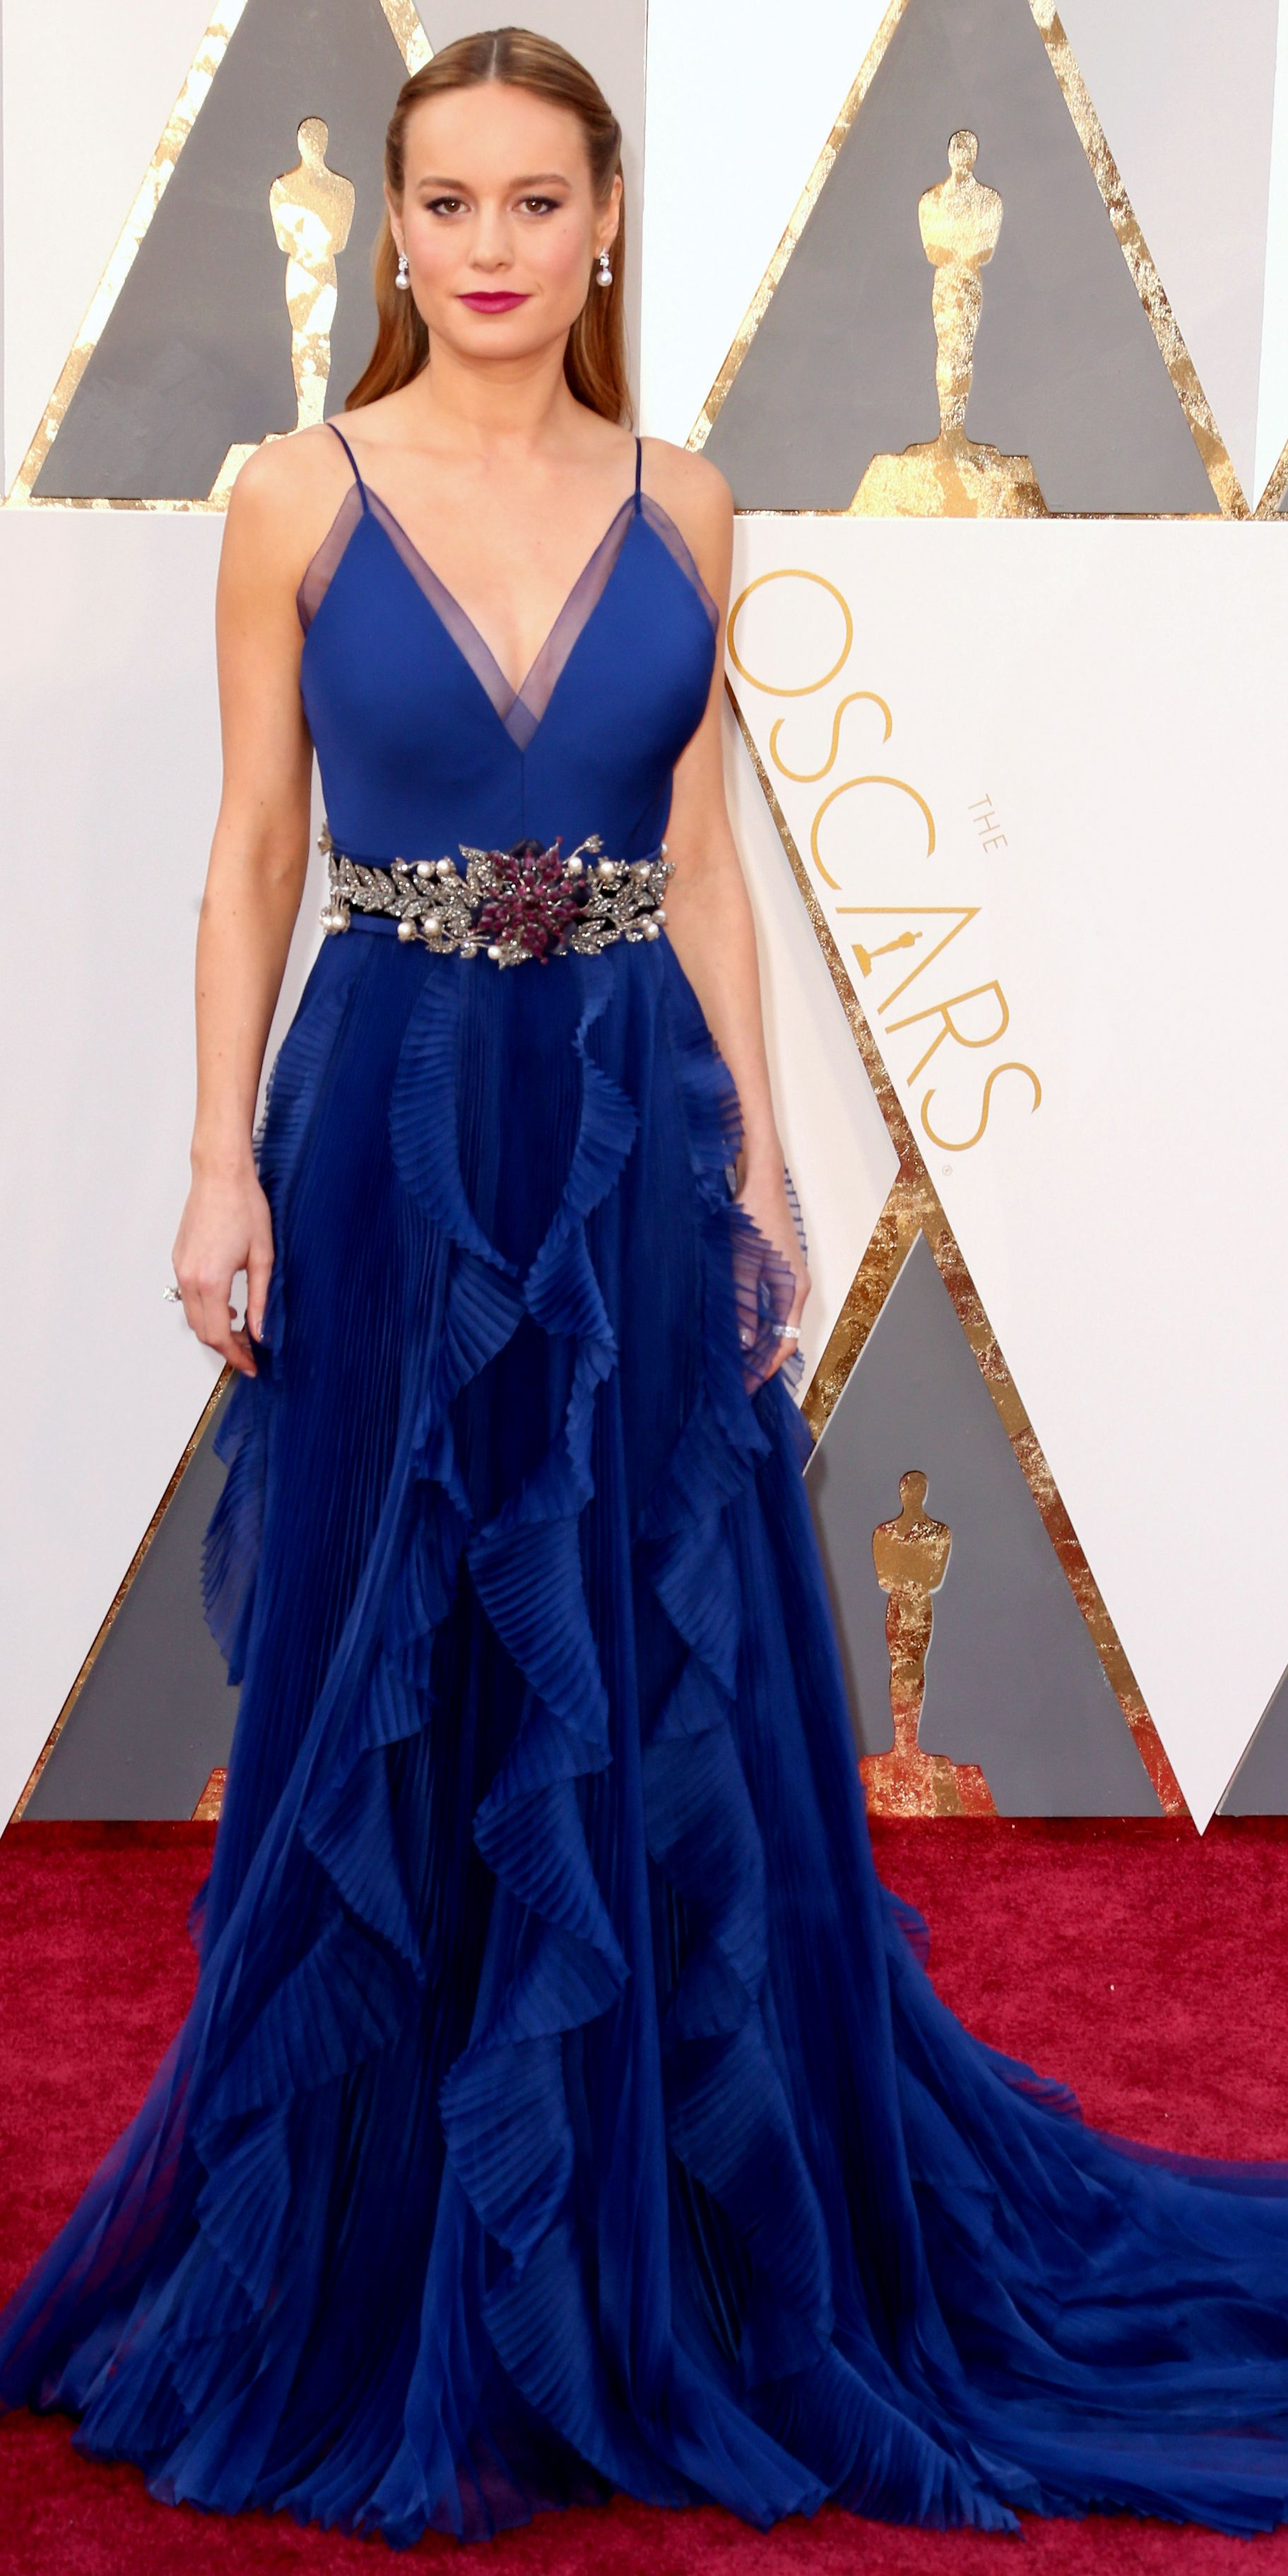 Our Top 10 Quick Breakfast Recipes: Our Top 10 Best Dressed Women At The Oscars: Do You Agree